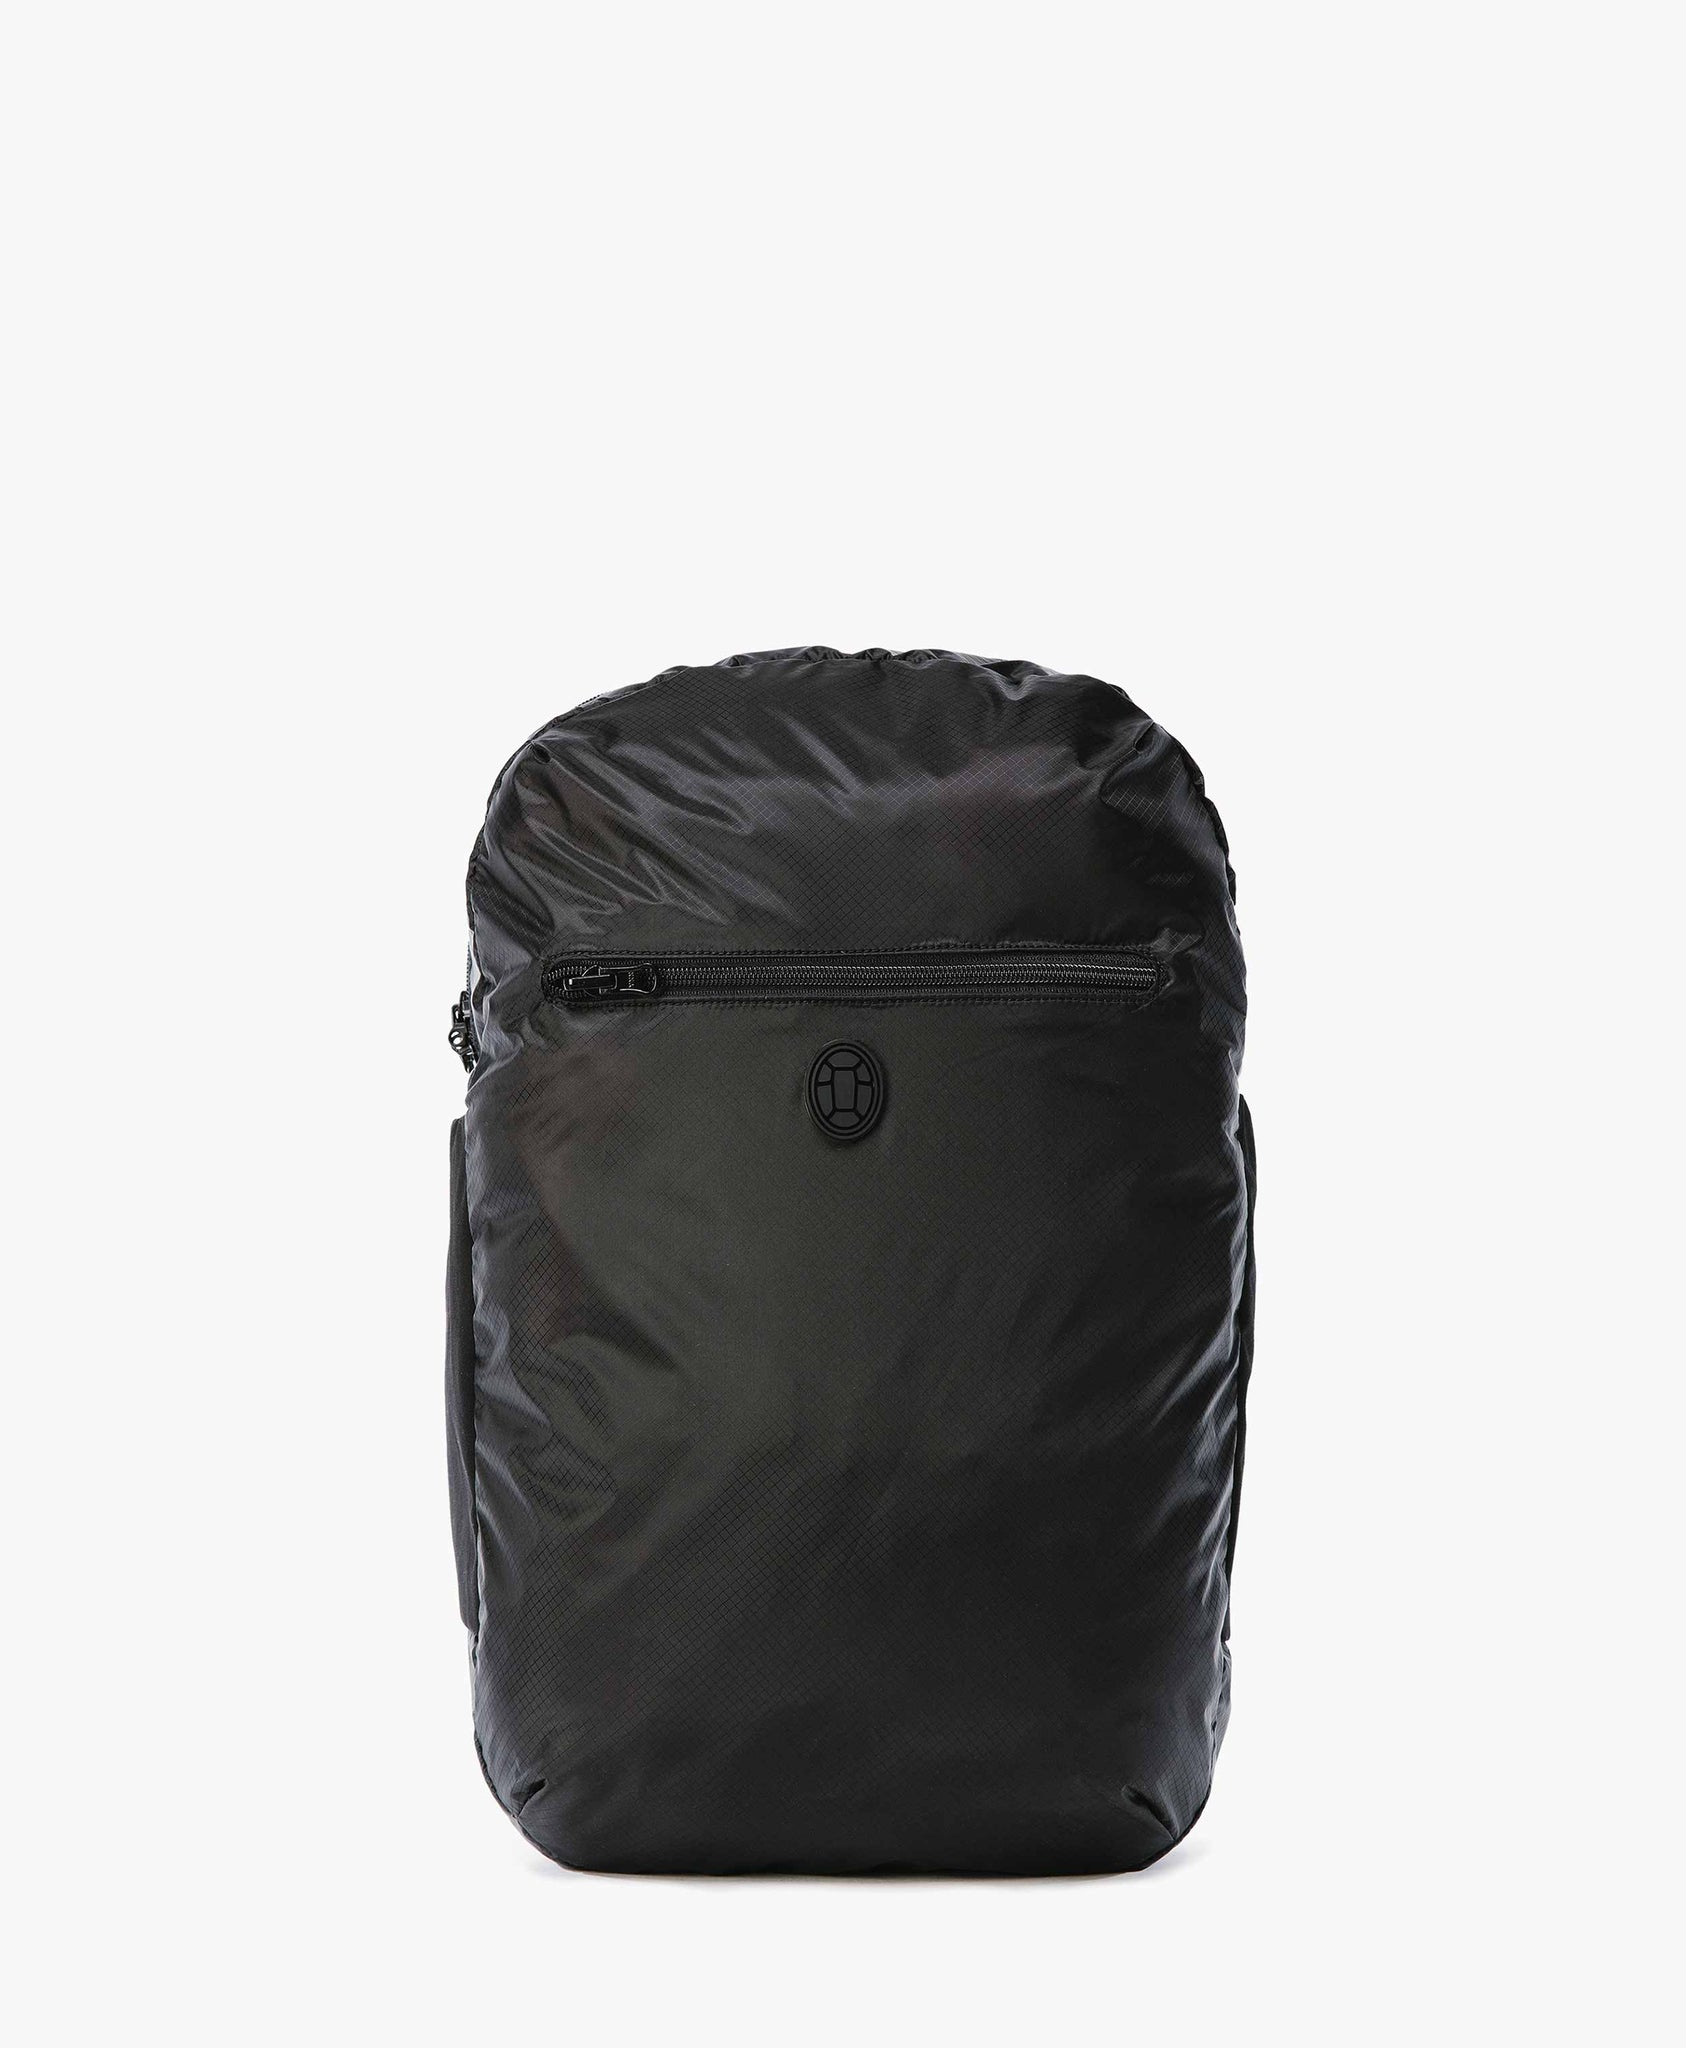 product/ The packable daypack for a day of sightseeing